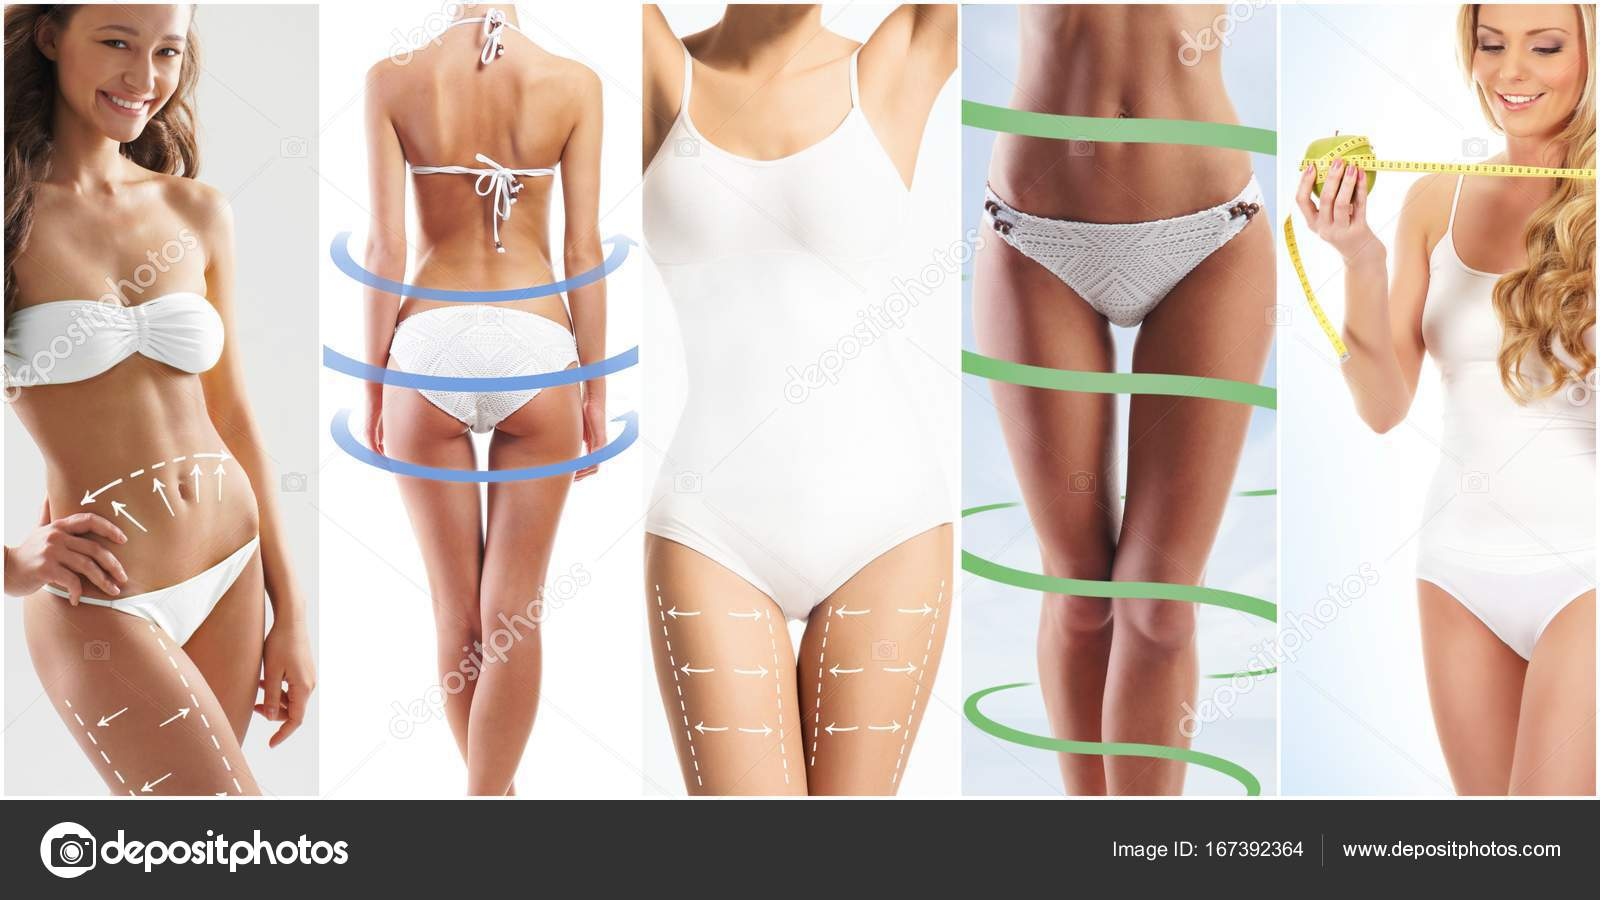 Slender And Fit Female Women With Drawing Arrows Stock Photo C Shmeljov 167392364 What is fit has a level of subjectivity to it but when it comes to posting here the image should feature some form of muscle definition or indicating some form of physical. slender and fit female women with drawing arrows stock photo c shmeljov 167392364